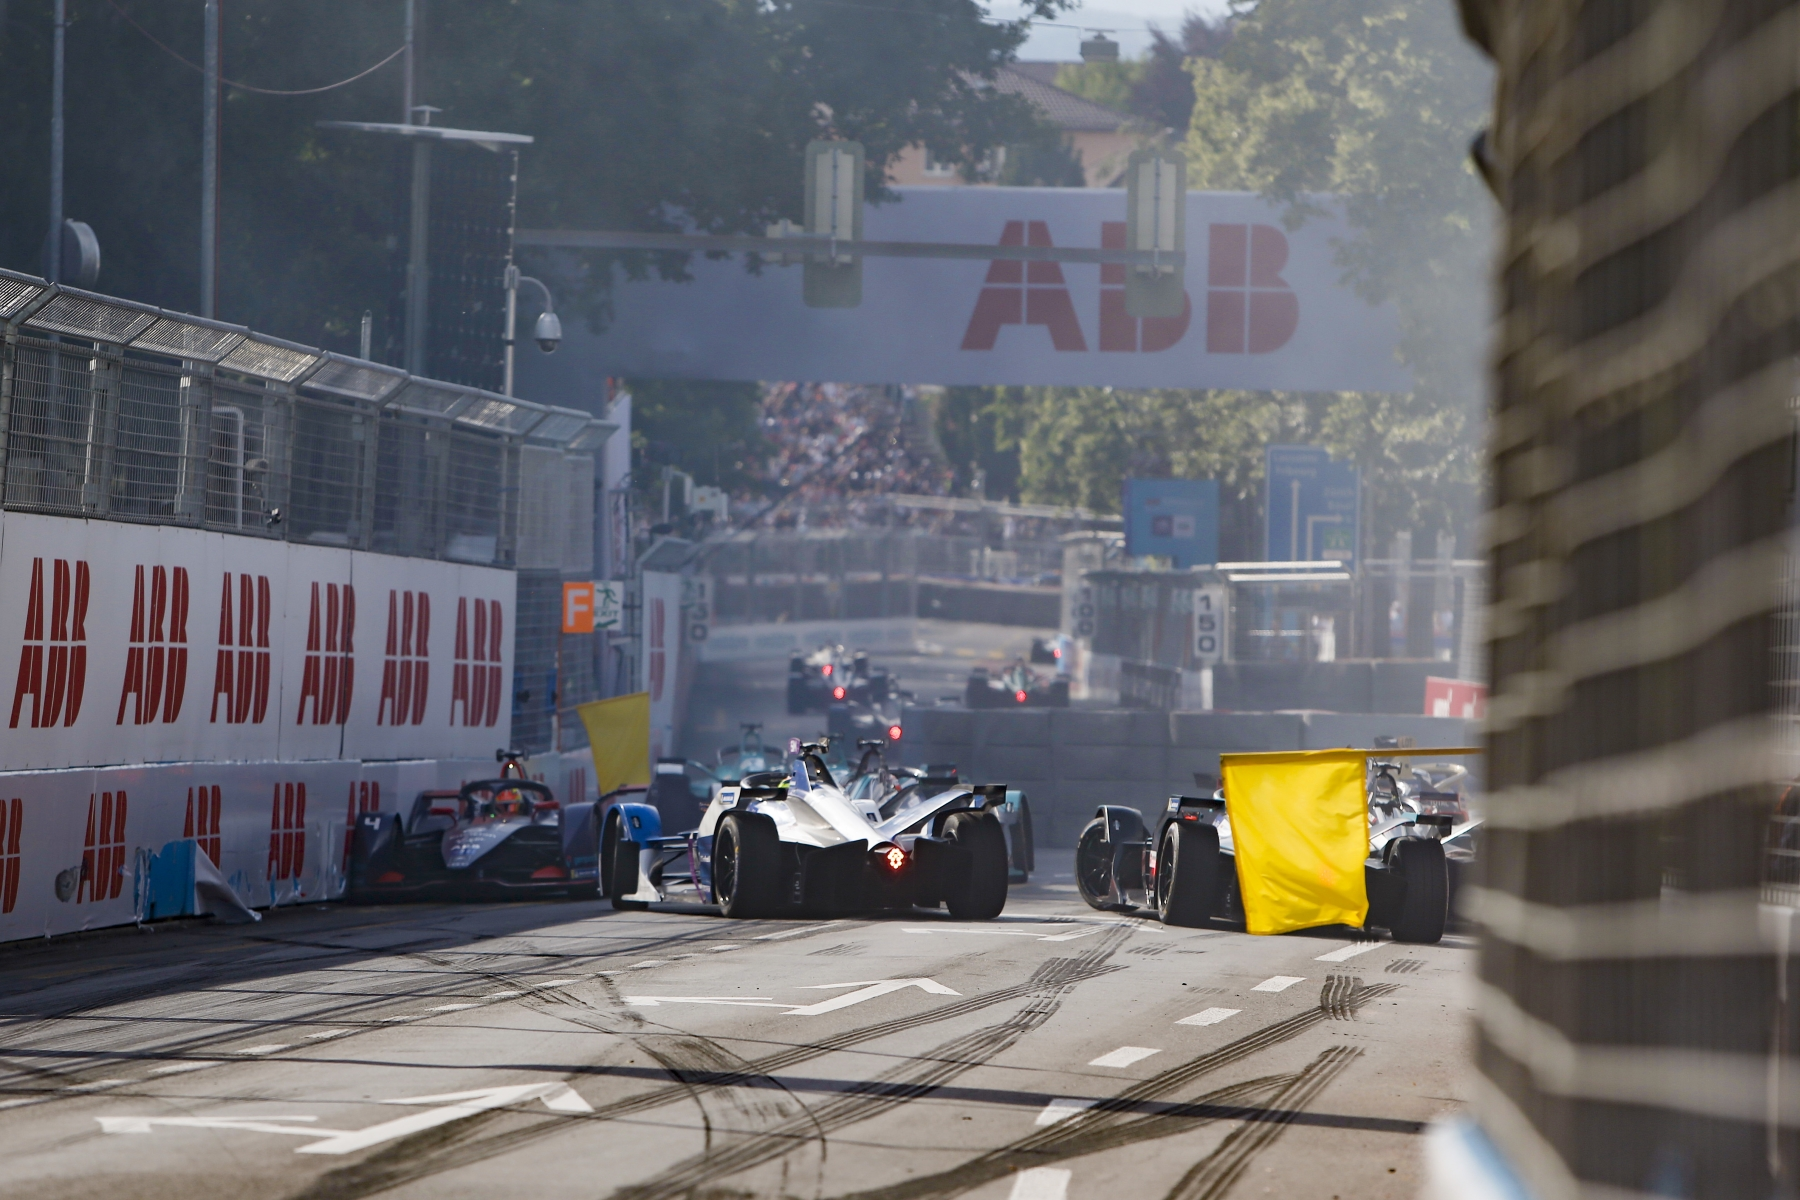 Top8-Bern-Crash-Start-Frijns-backwards-yellow-flags.jpg